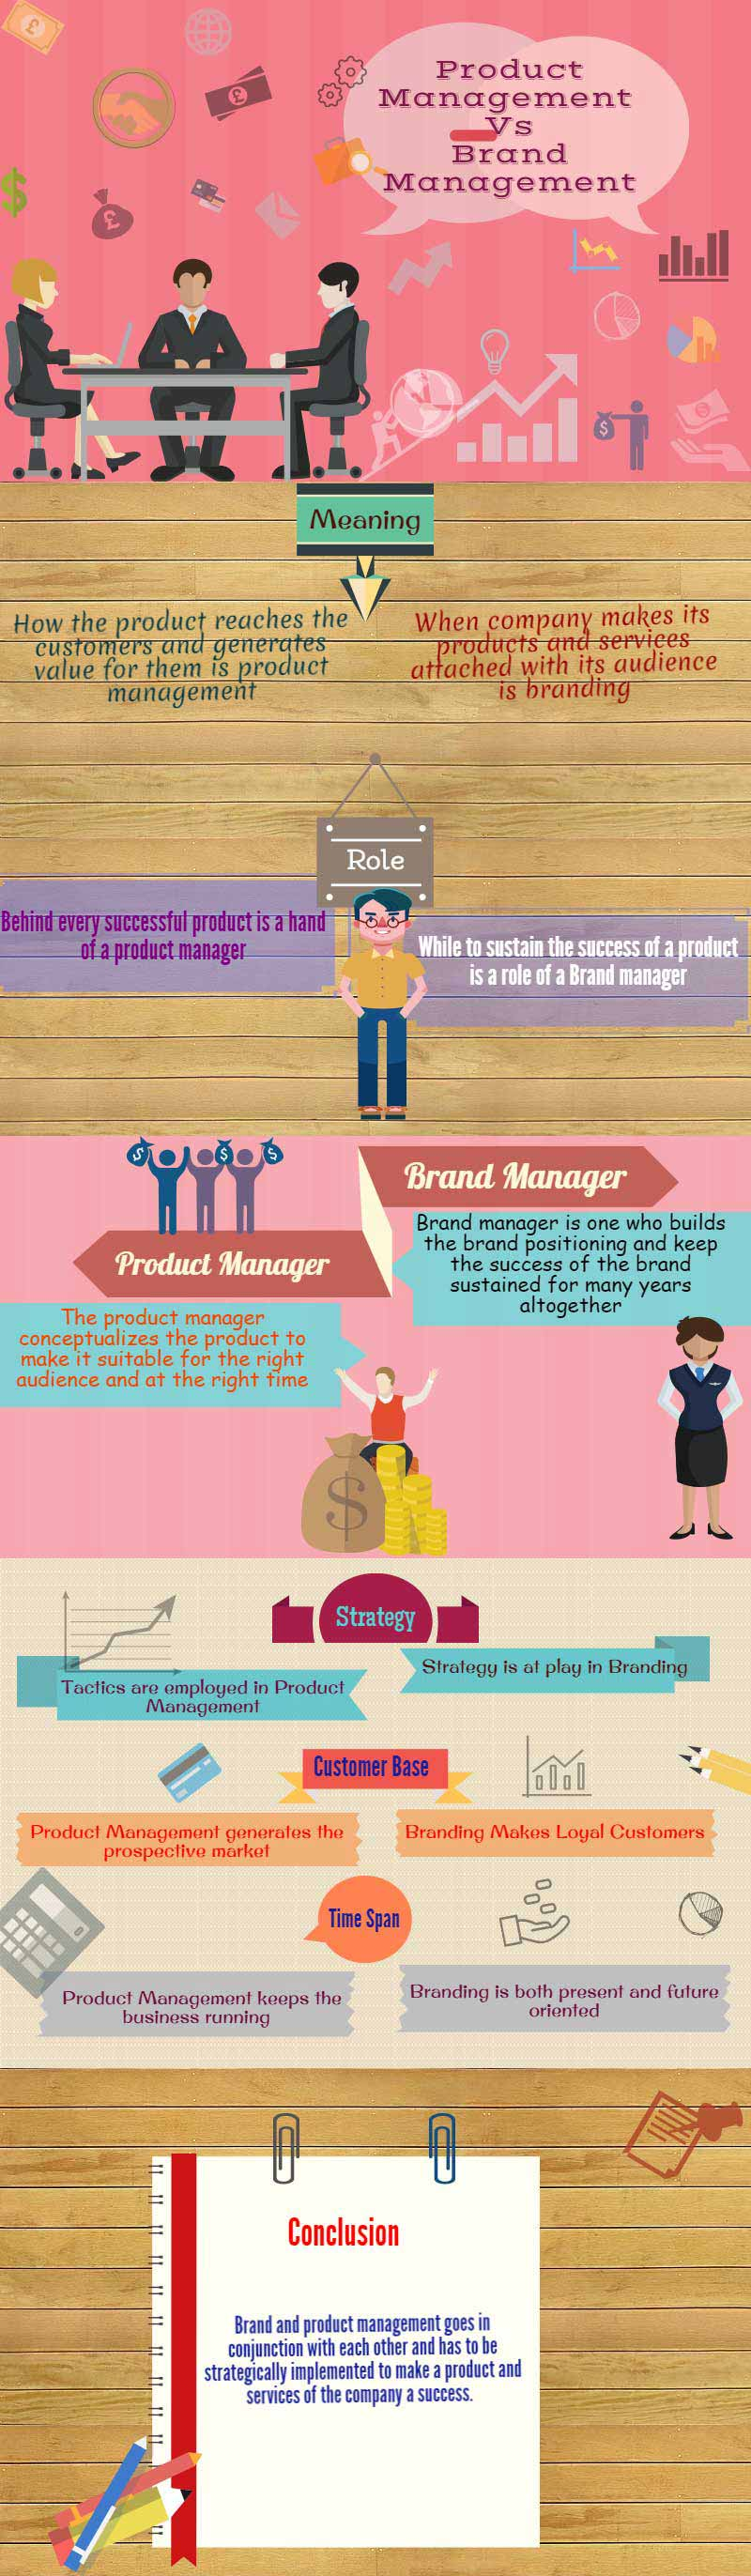 product management vs brand management